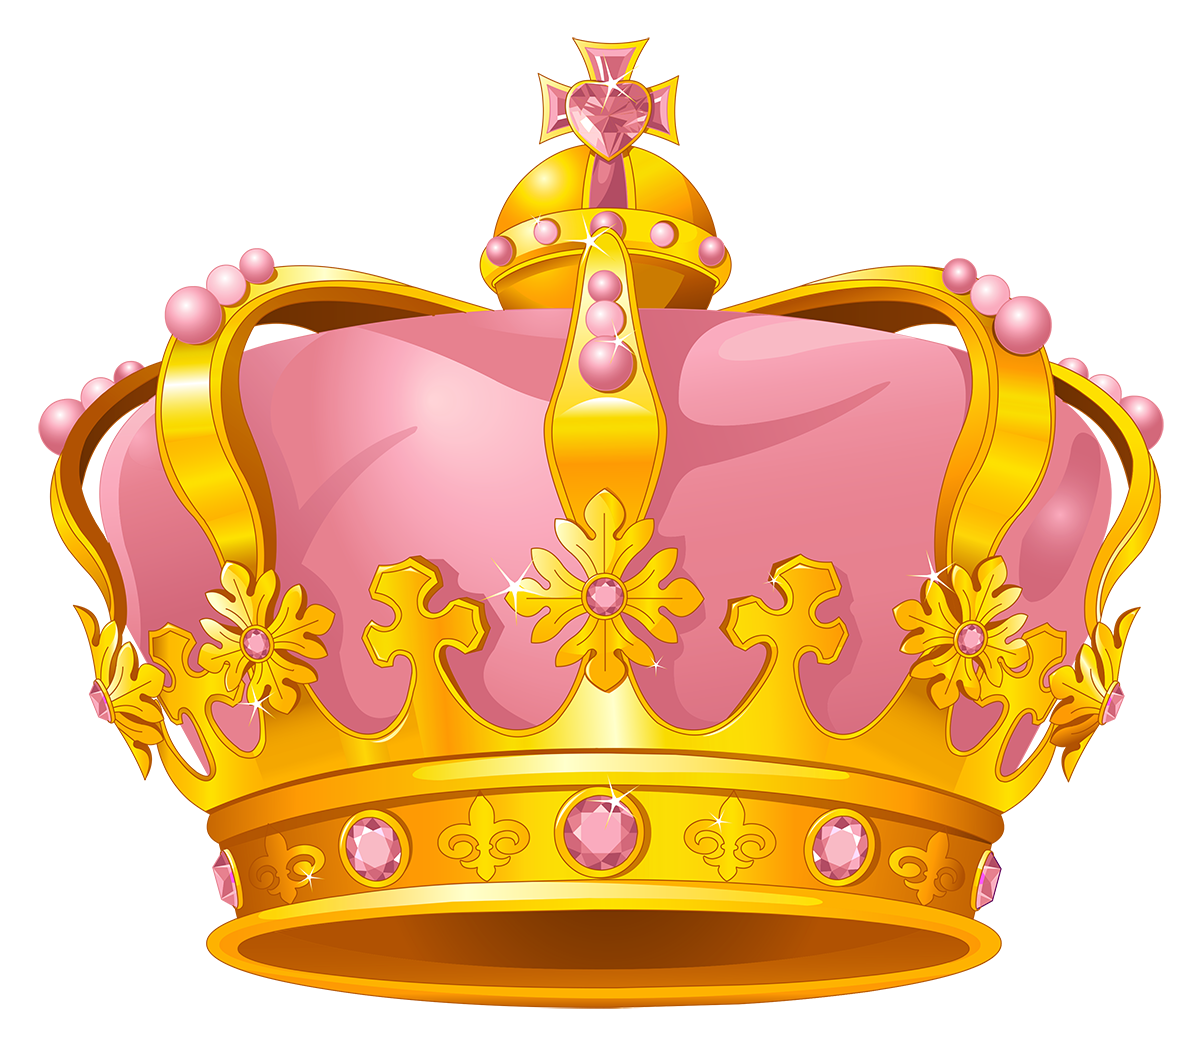 Crown with a 5 clipart clip art corona reale - Cerca con Google | castillos y princesas | Pinterest ... clip art